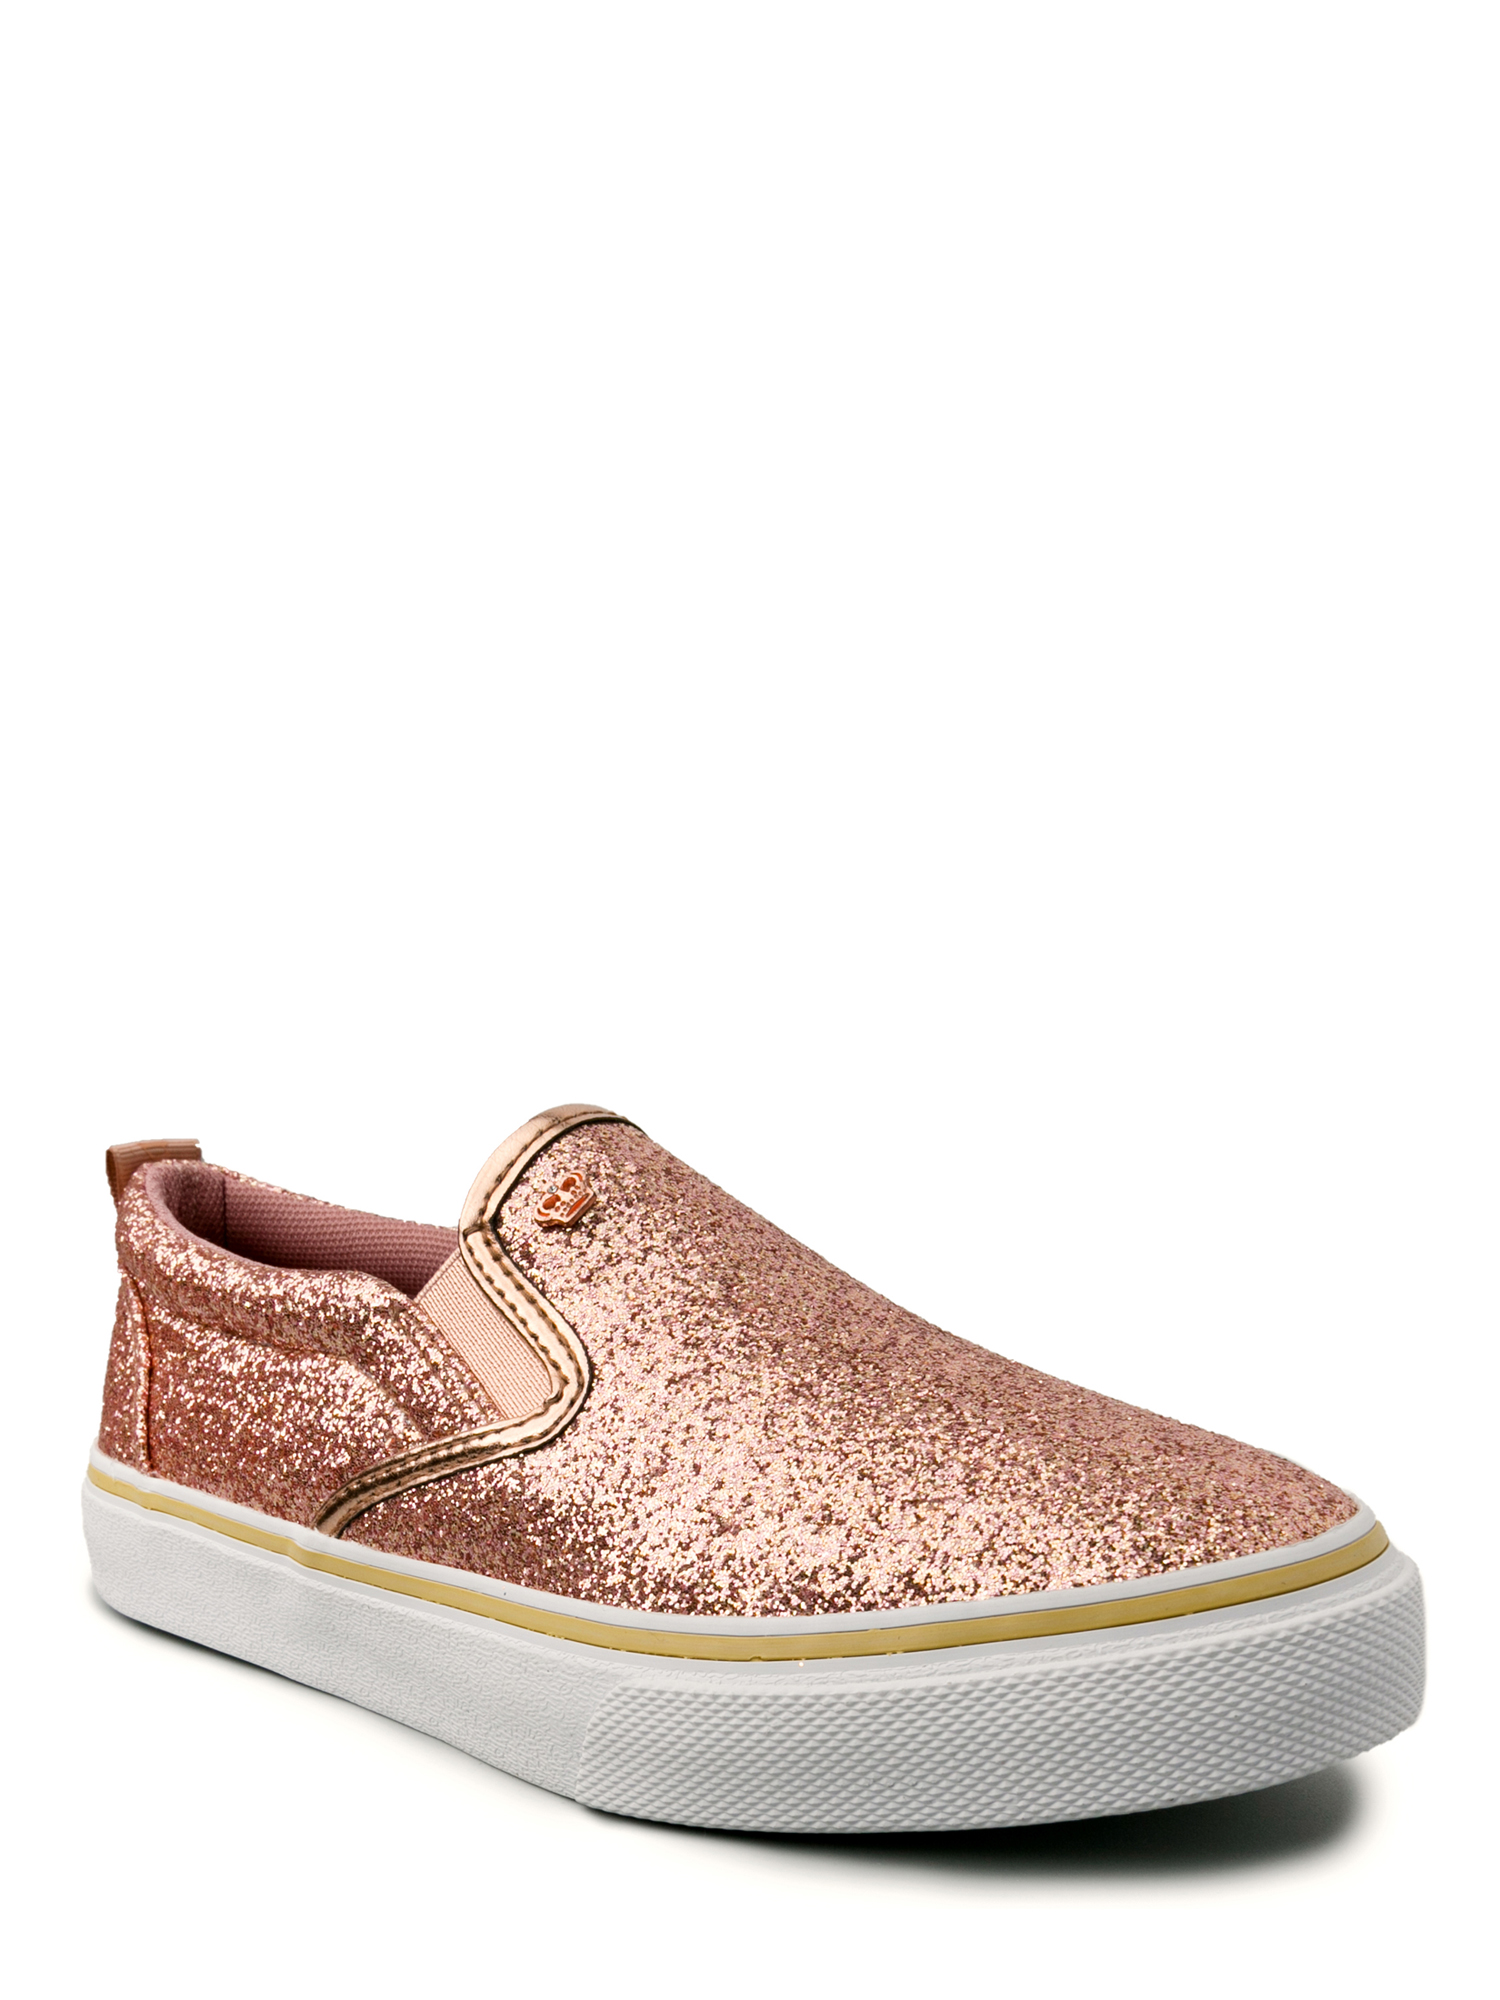 Juicy Couture Women's Charmed Glitter